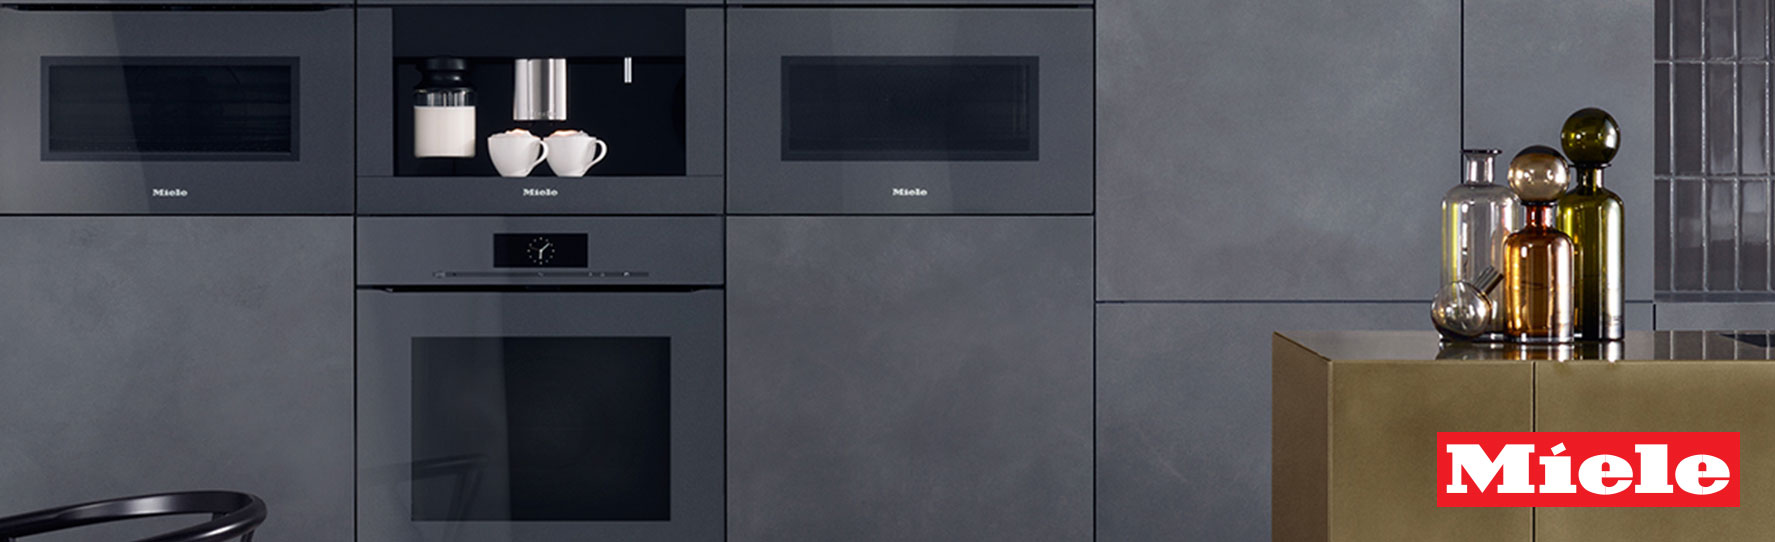 Miele Products at Standard TV & Appliance| AuthorizedMieleRetailer ...